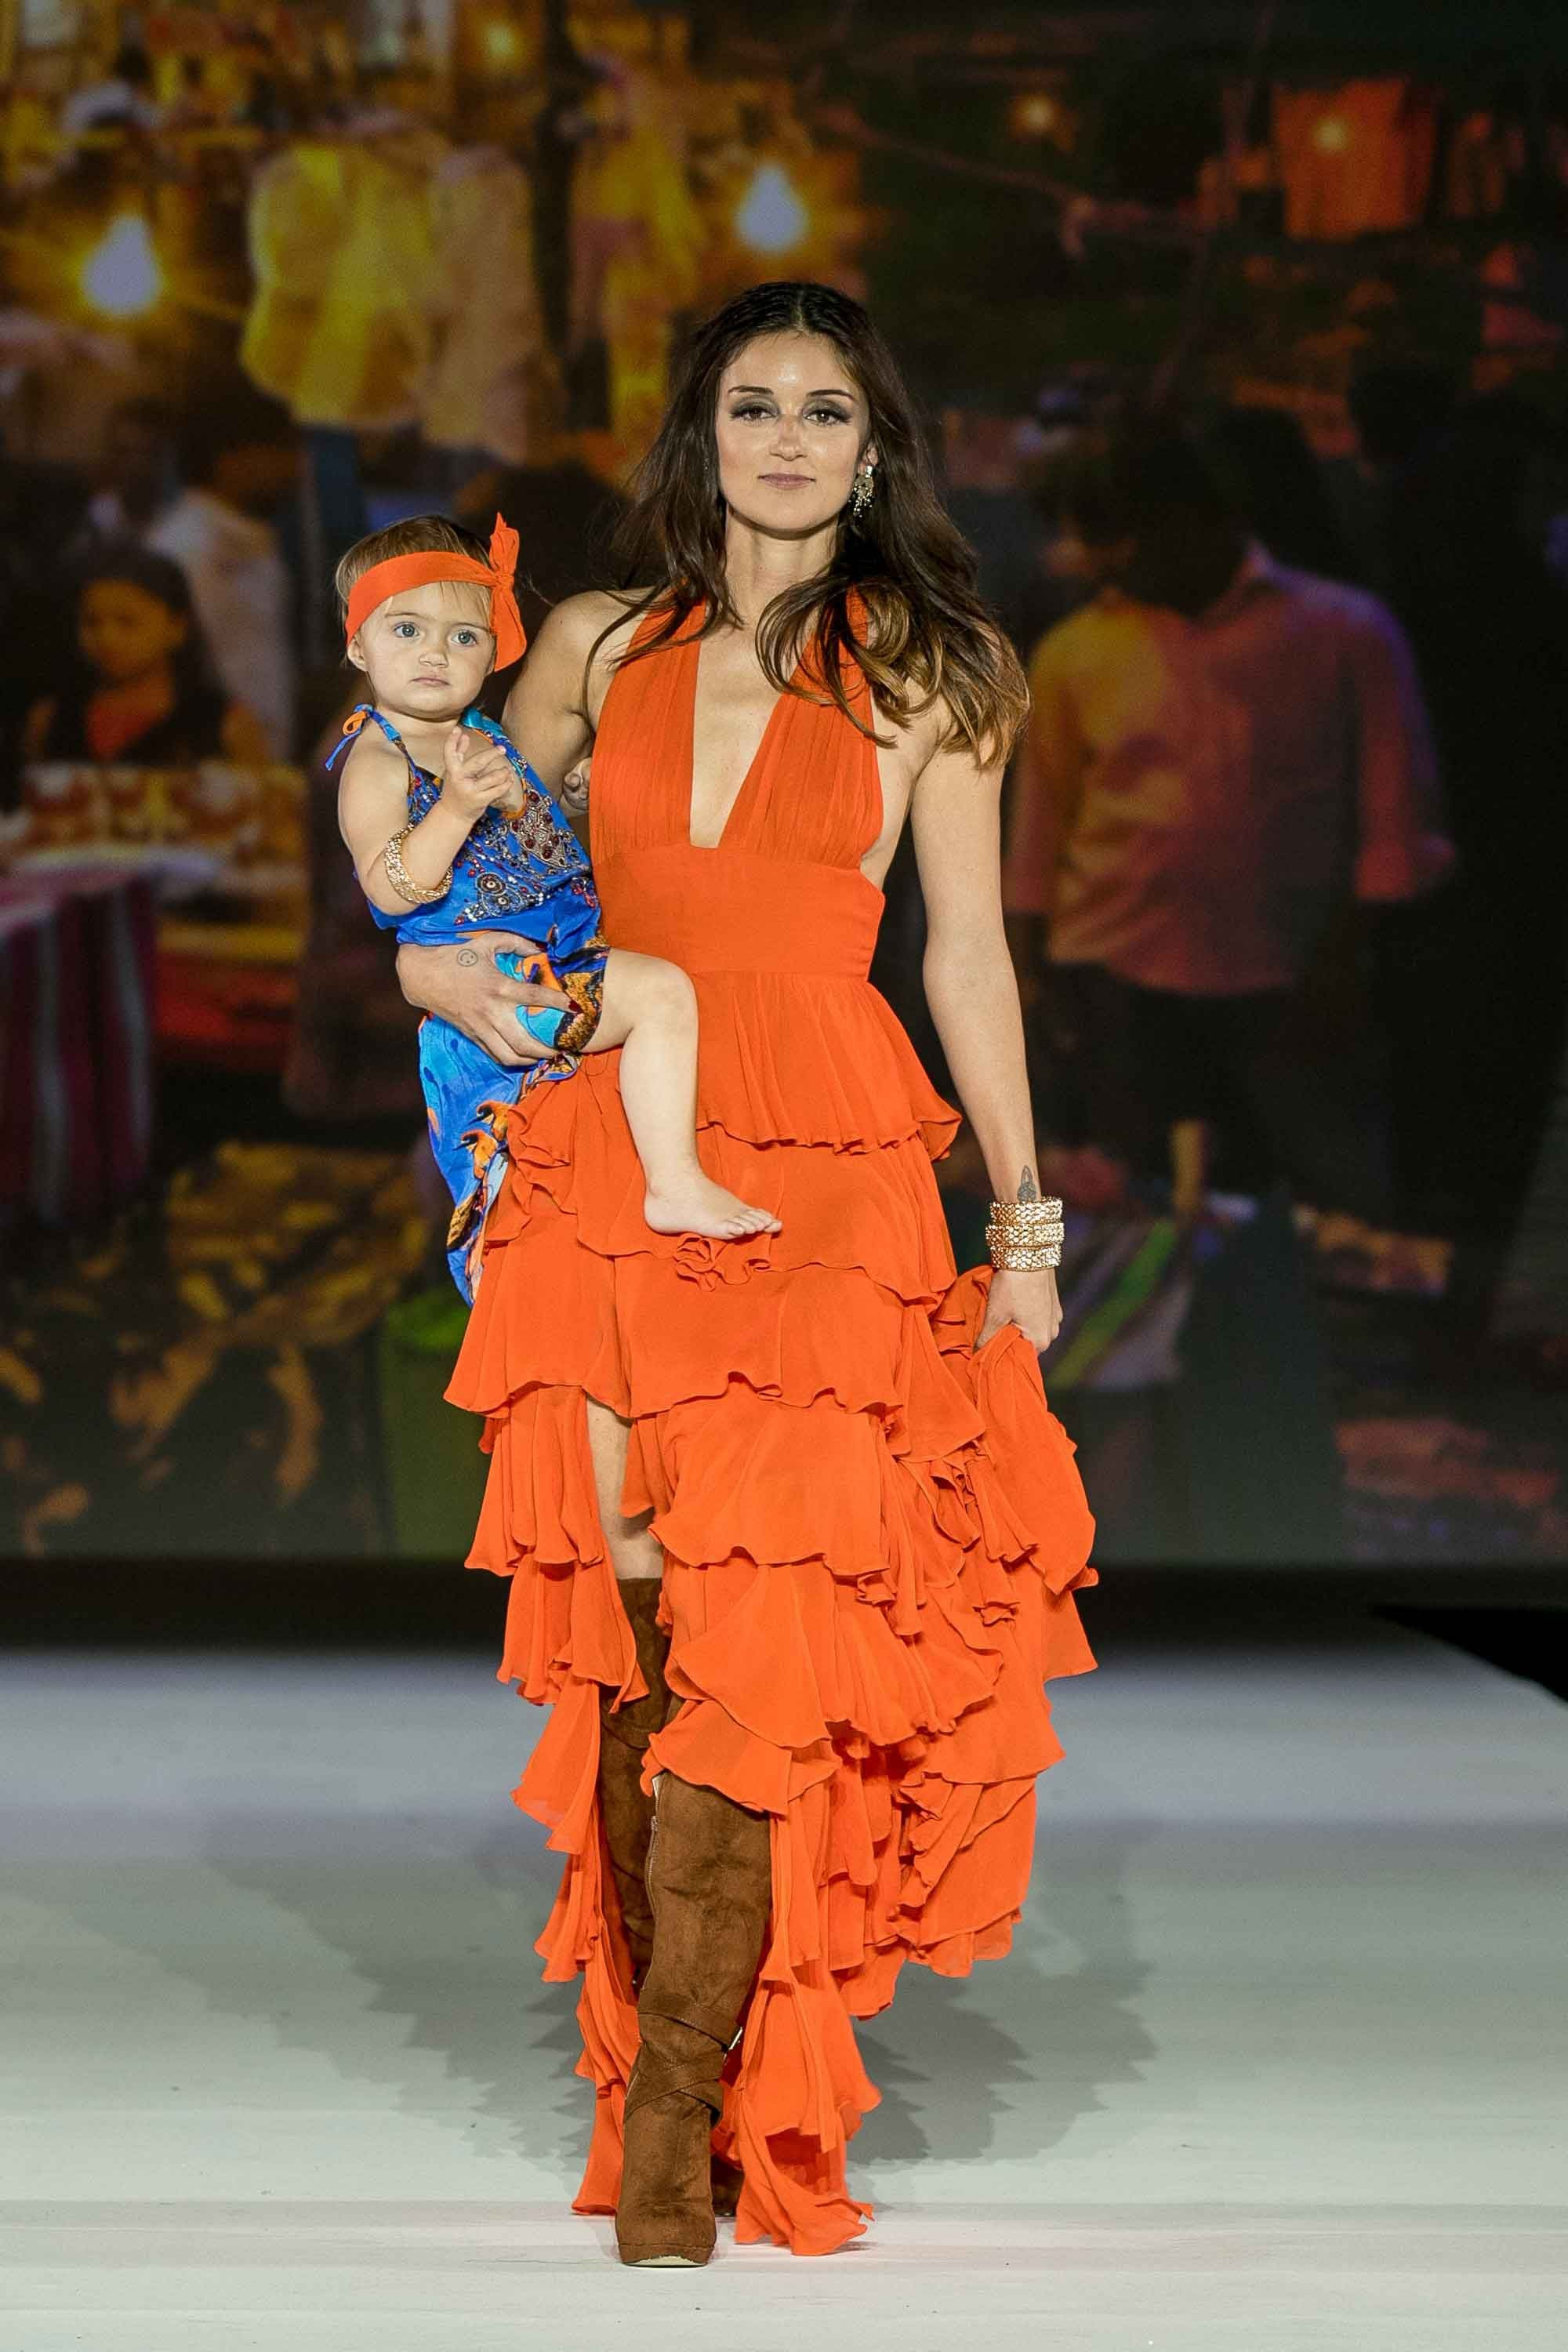 shahida parides fall 2017 collection on caroline damore and daughter bella at style fashion week la